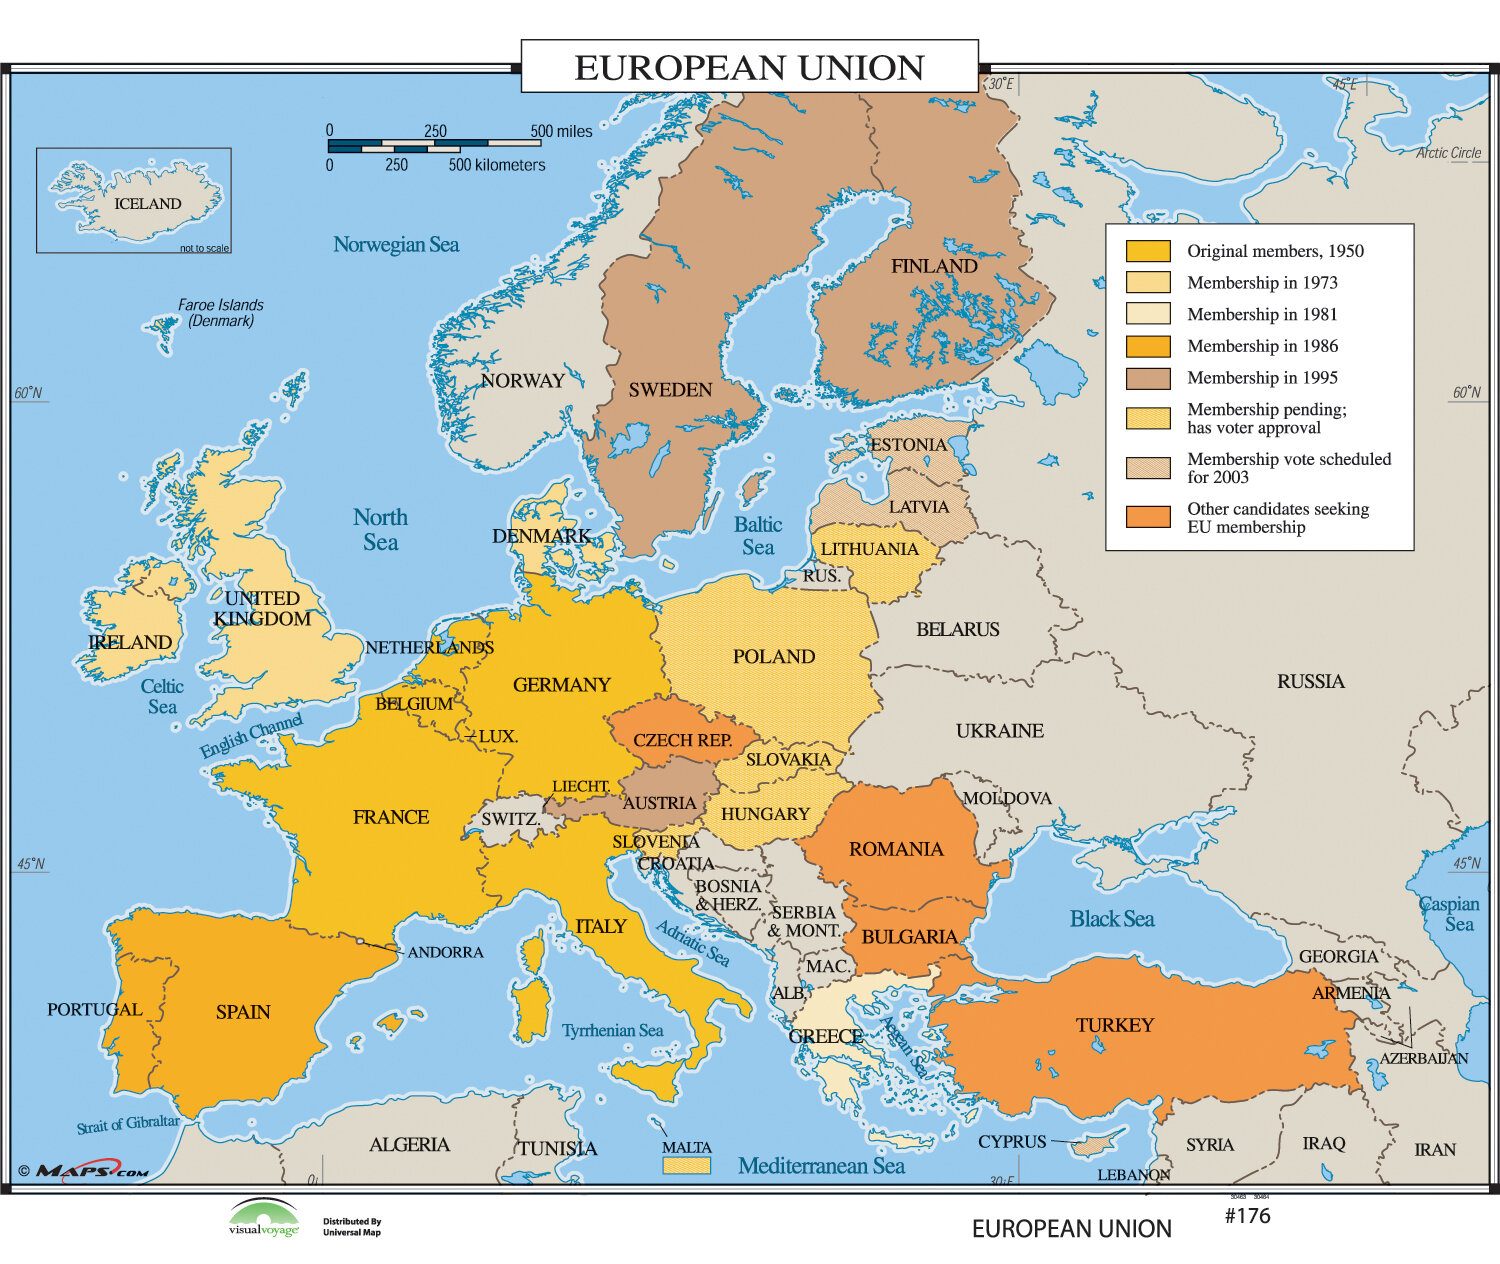 World History Wall Maps - European Union